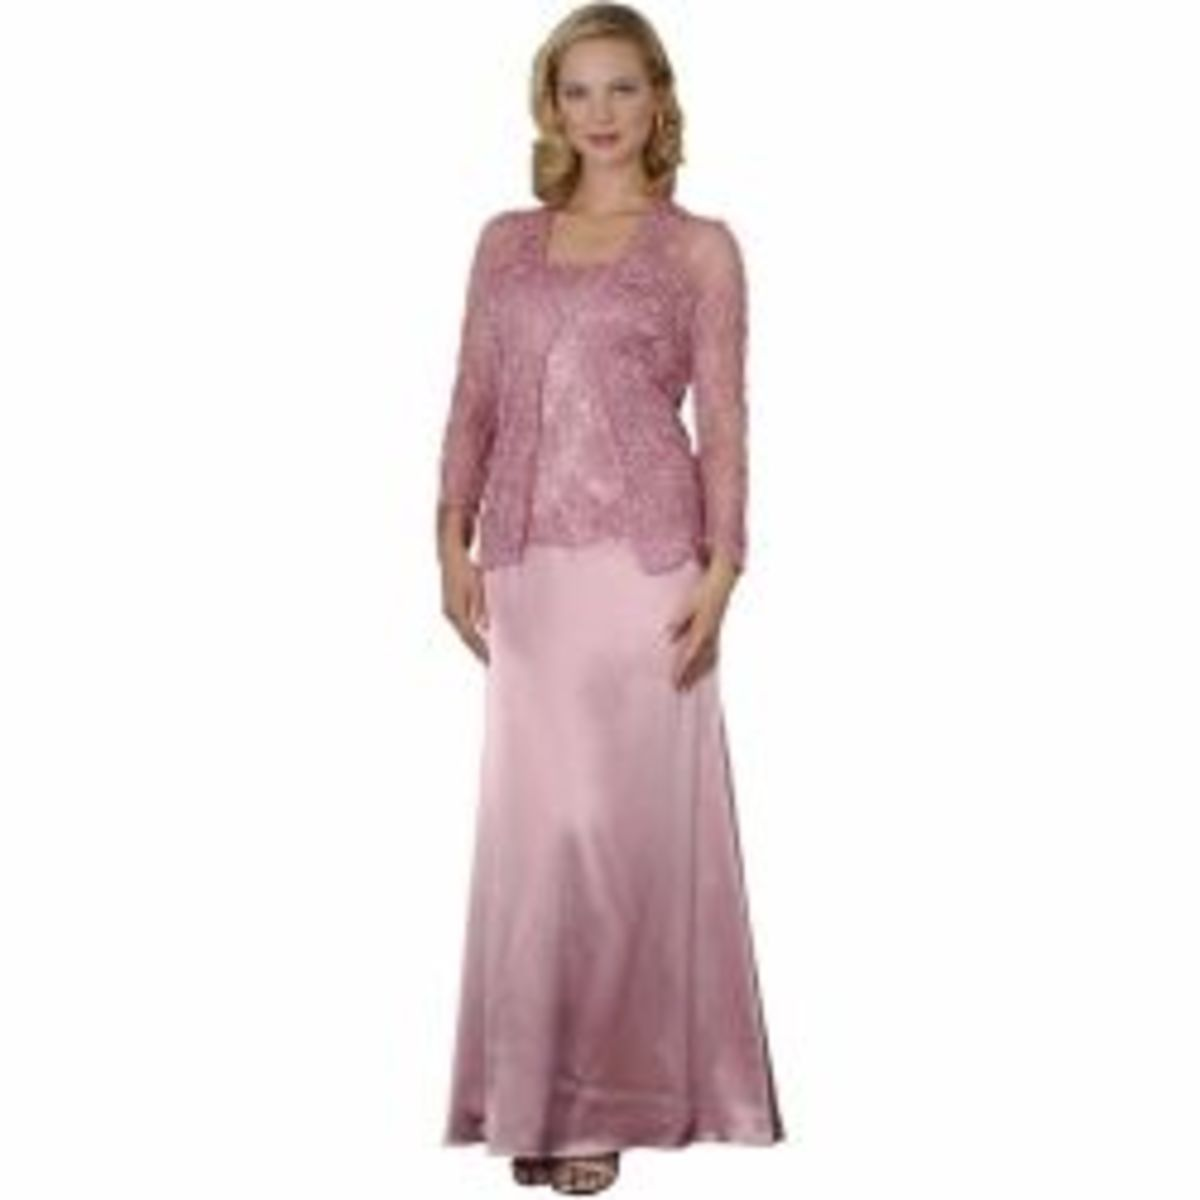 Rose Crochet Formal Evening Dress and Jacket - Mother of Bride & Groom Dress